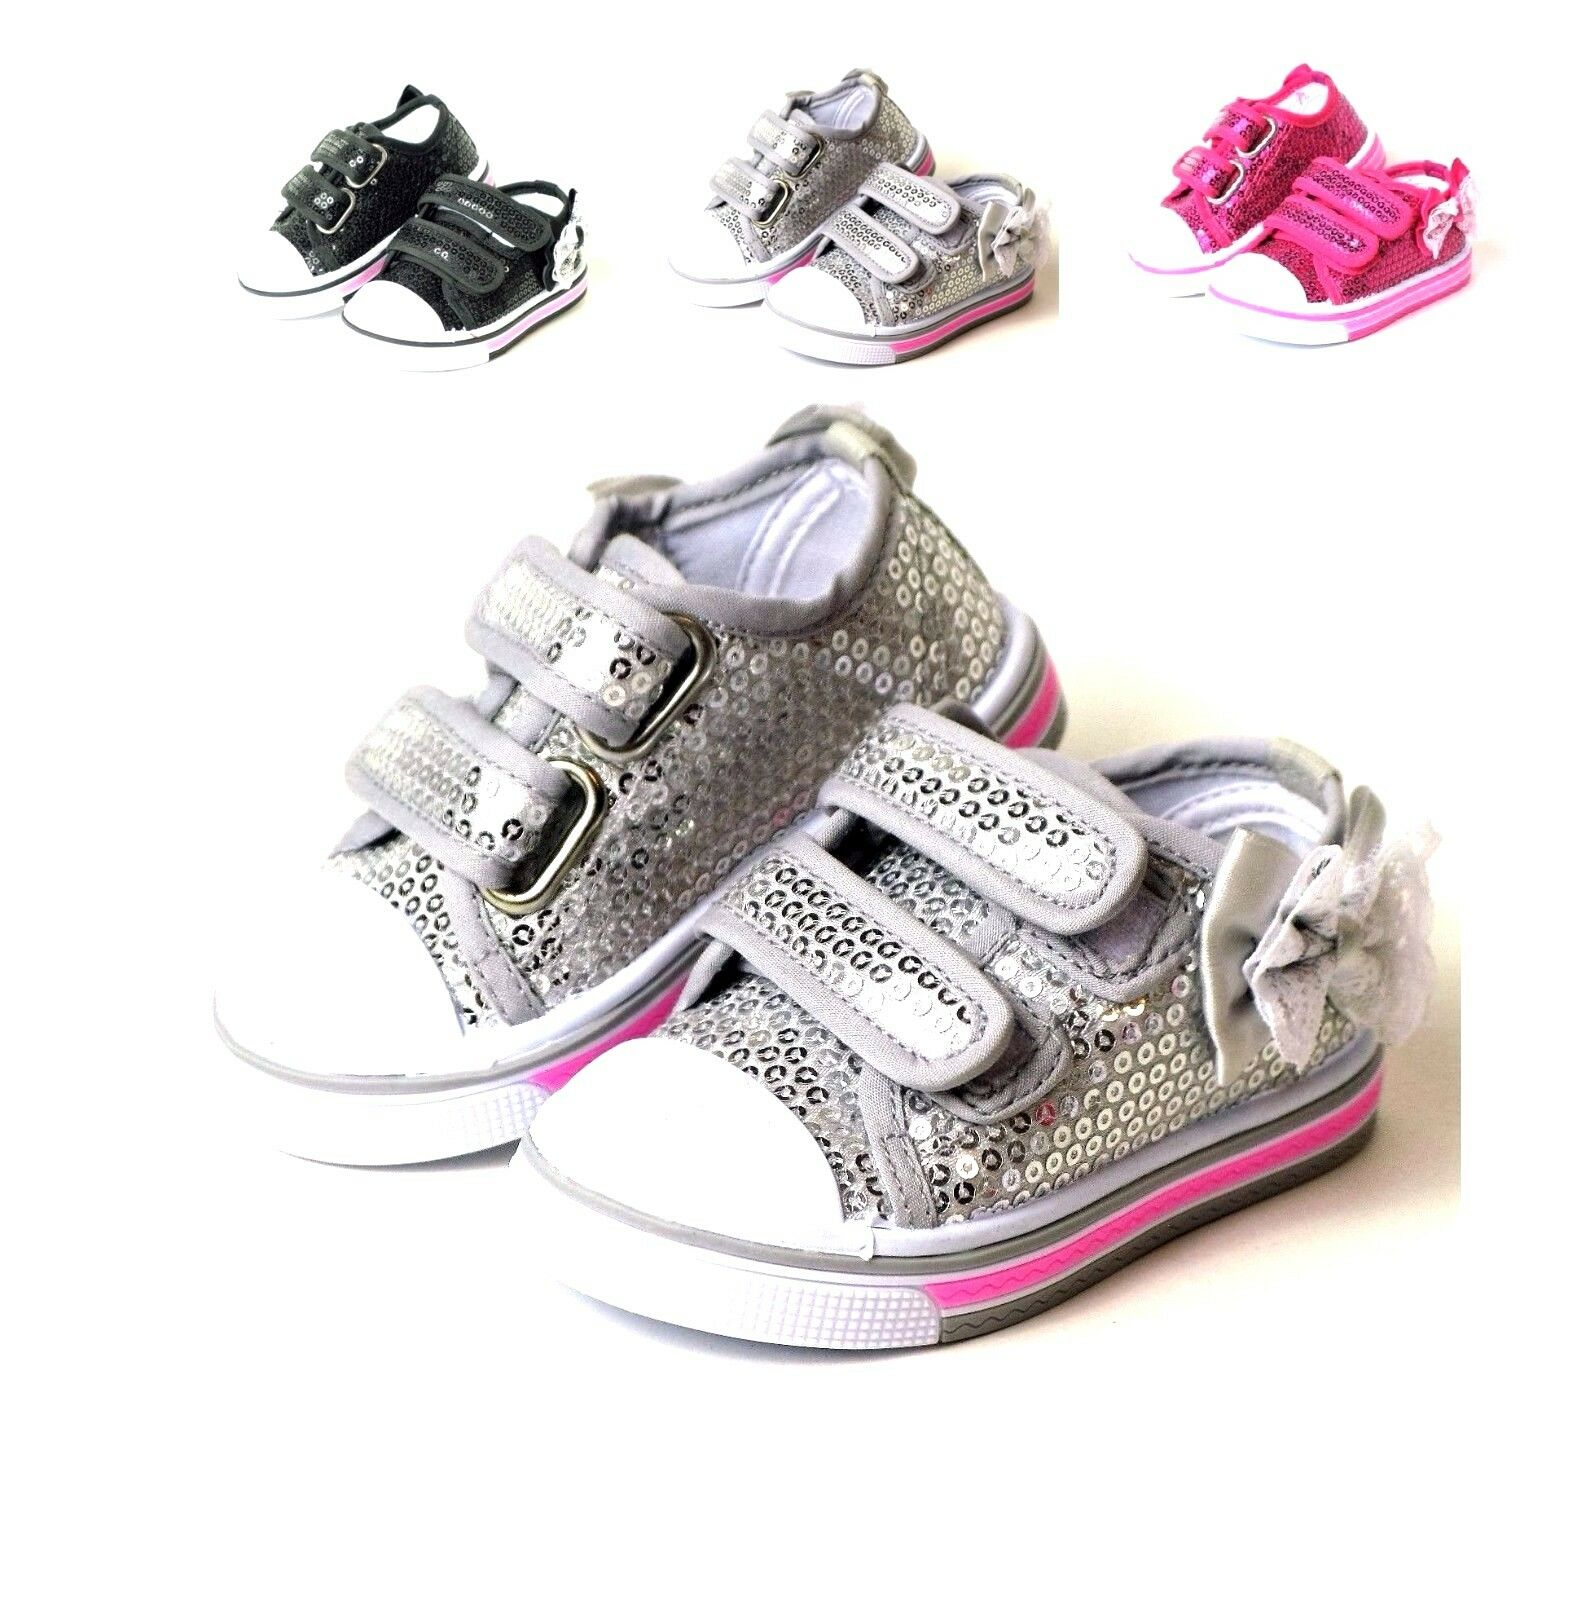 New Infant And Baby Toddler Girls Slip On Dress Shoes 3 ...